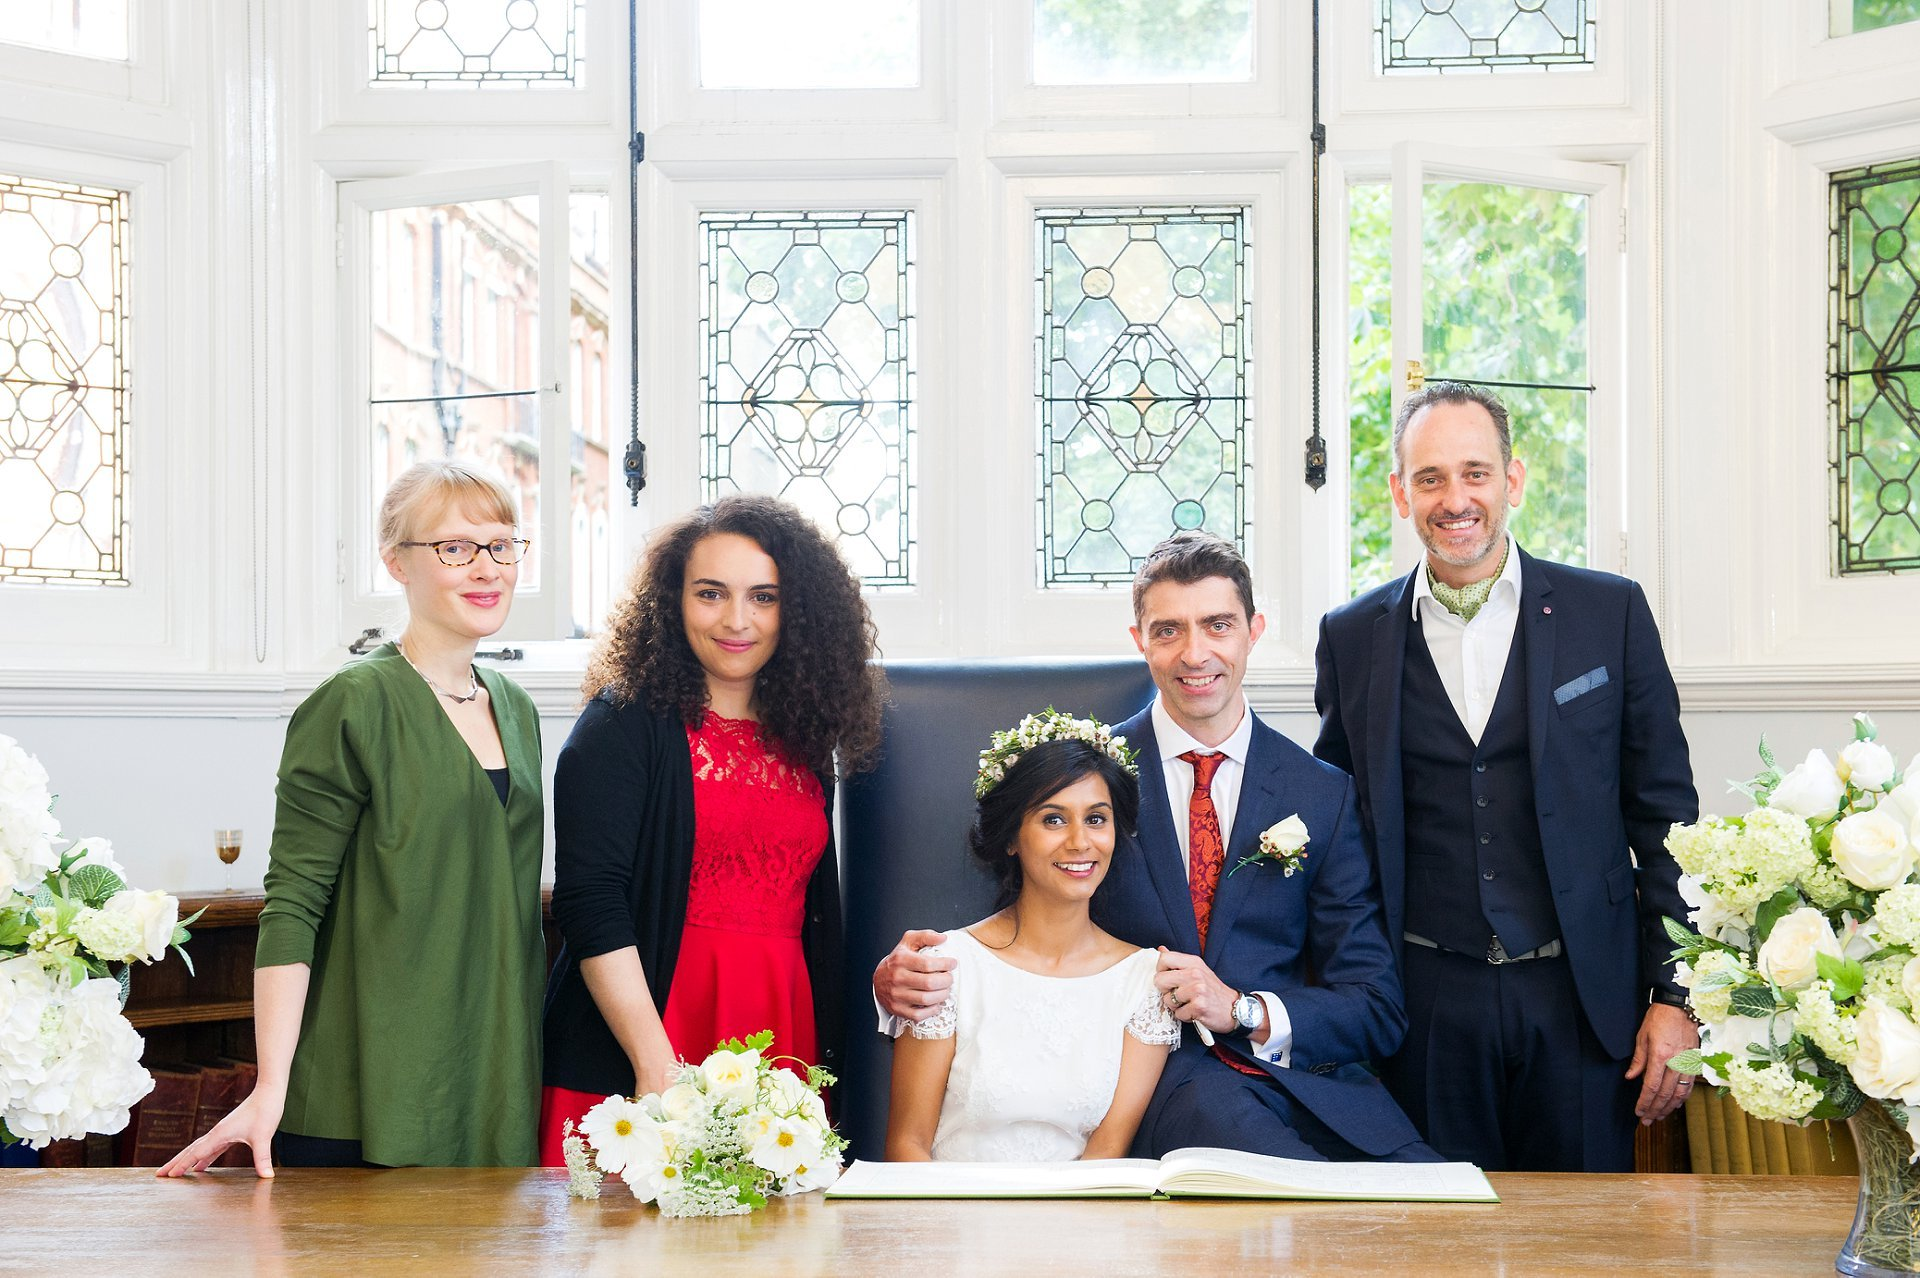 register office wedding photography showing bride and groom with their witnesses